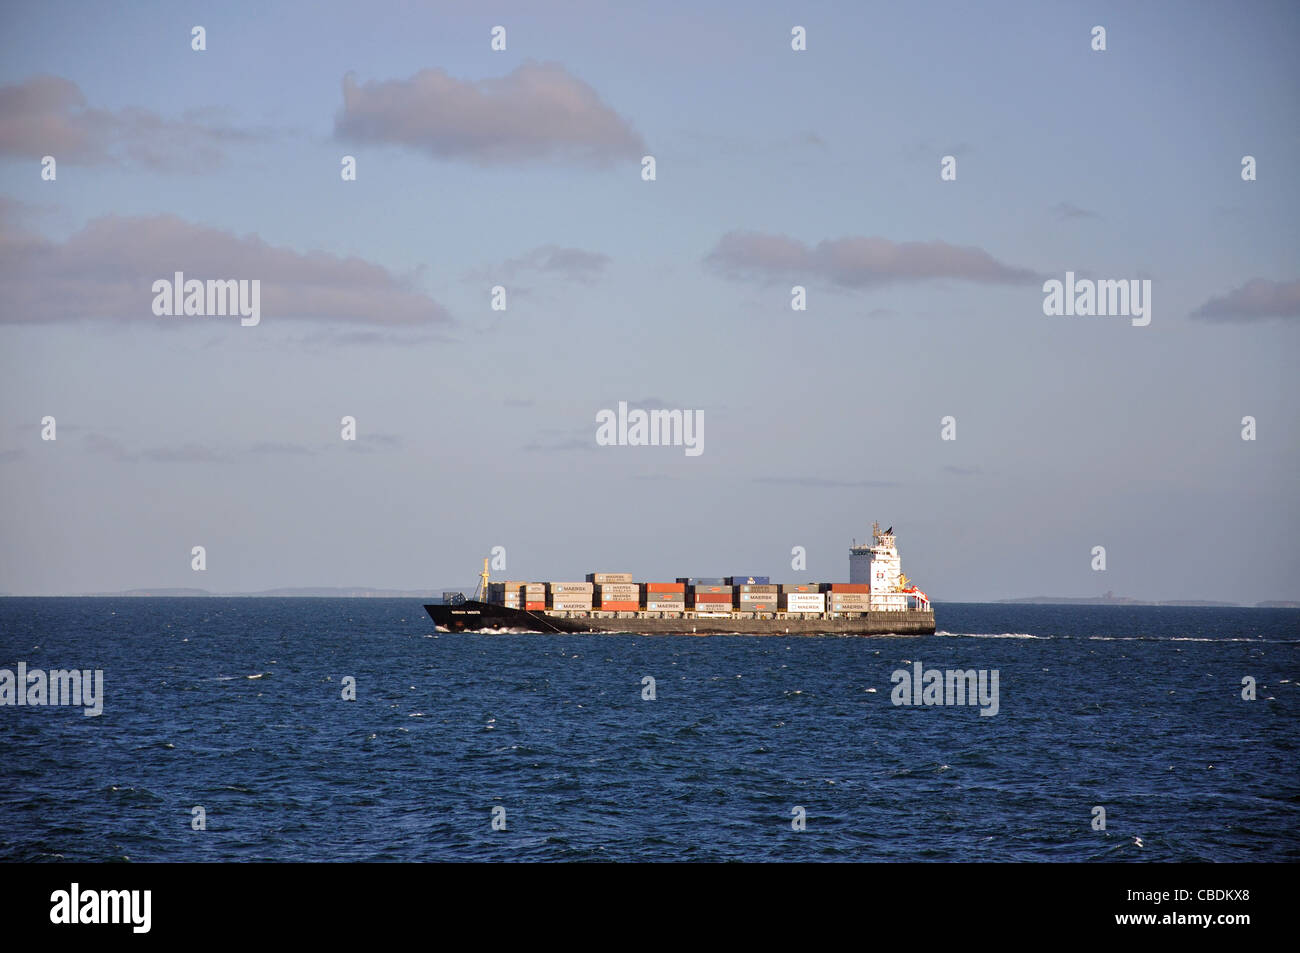 Container ship on the North Sea, Northern Europe - Stock Image